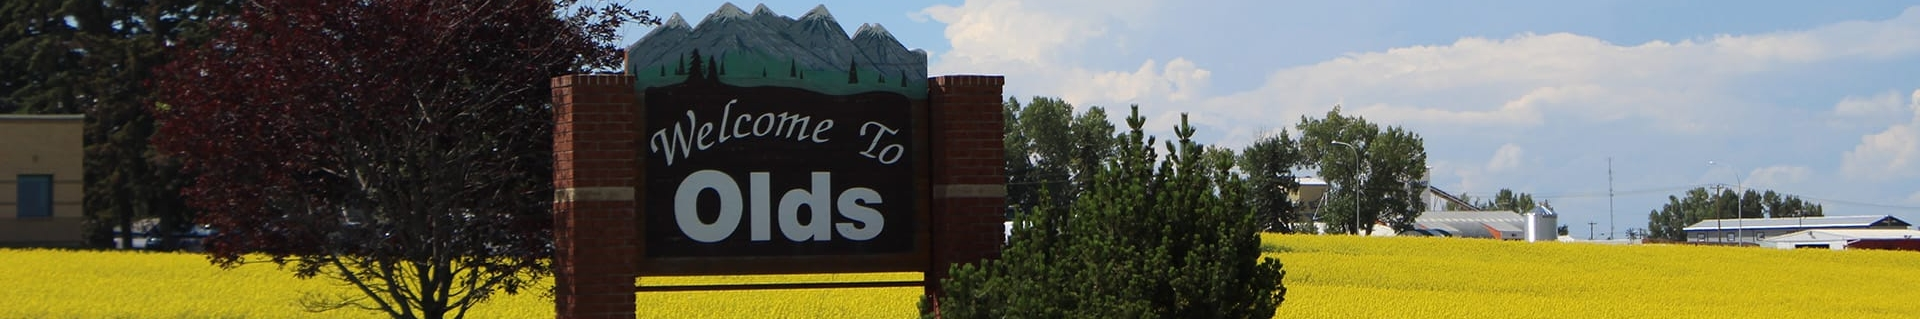 'Welcome to Olds' sign amidst a bright yellow canola field